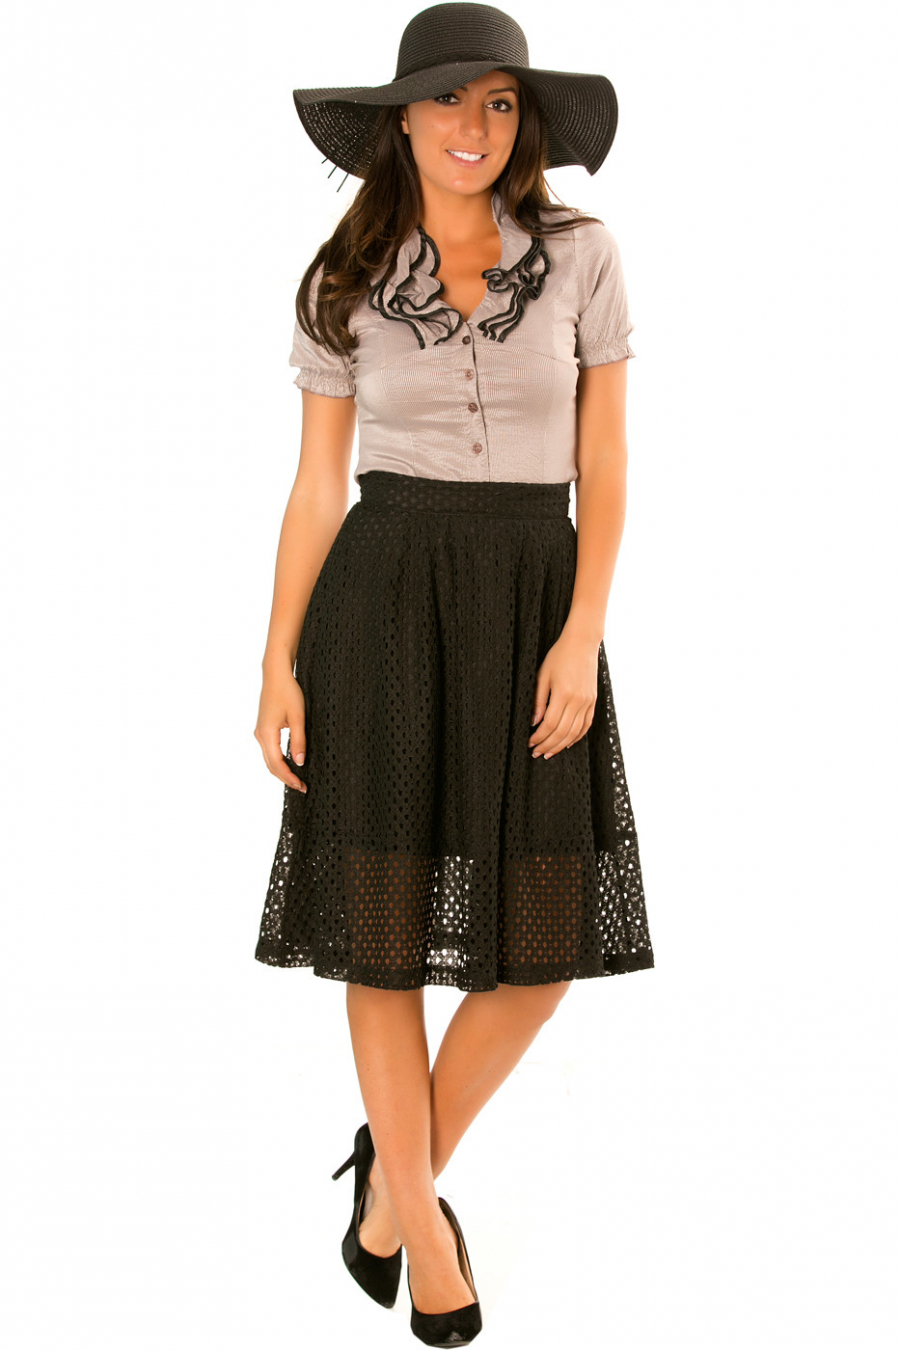 Blouse with black frilly border. Chic blouse. 723